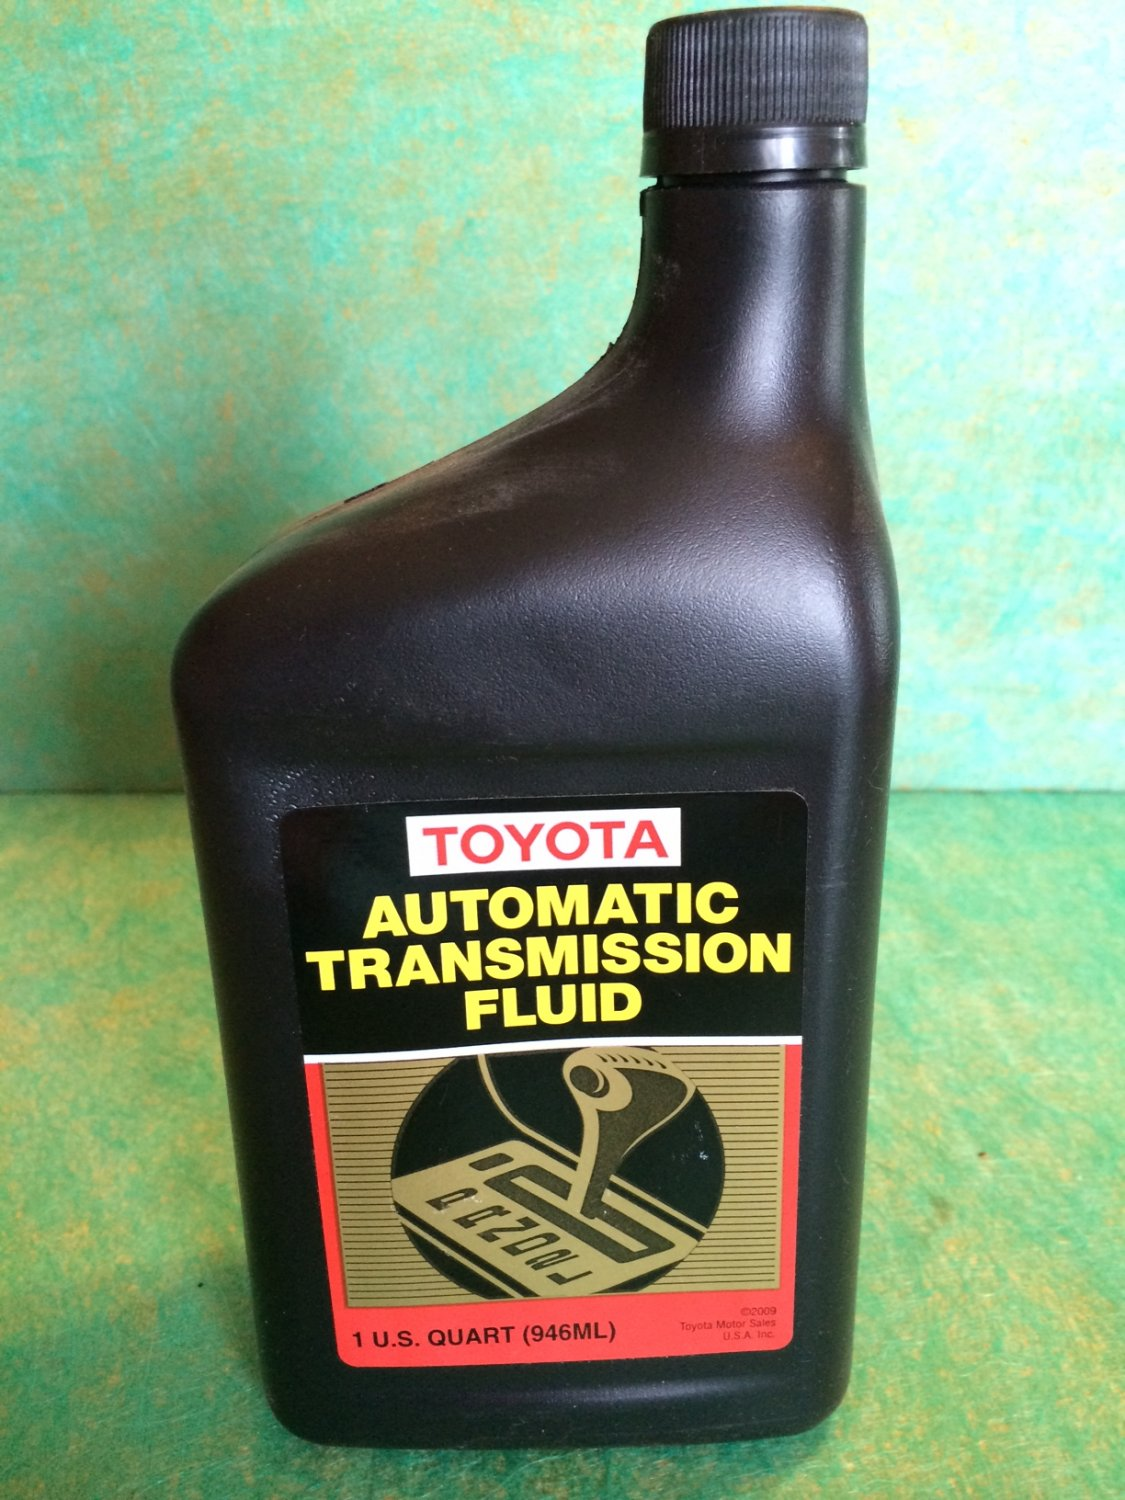 toyota automatic transmission fluid dexron iii 00718 atf00 1 qt. Black Bedroom Furniture Sets. Home Design Ideas